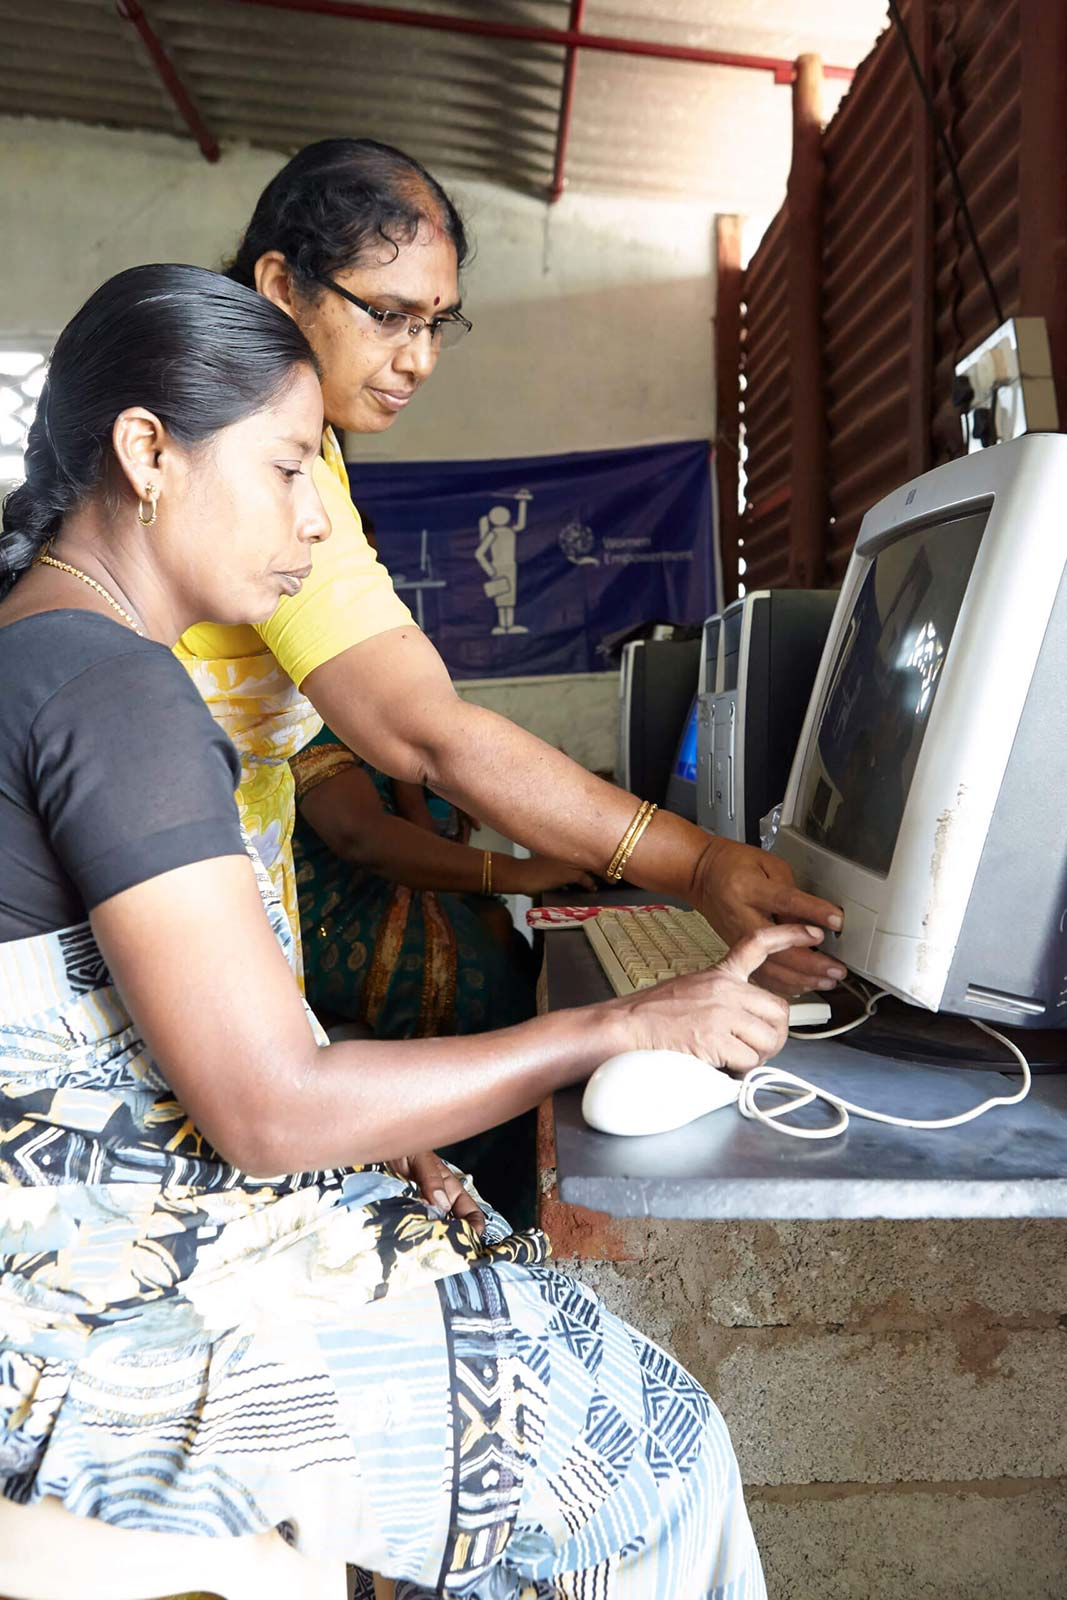 A women instructing another woman on the computer